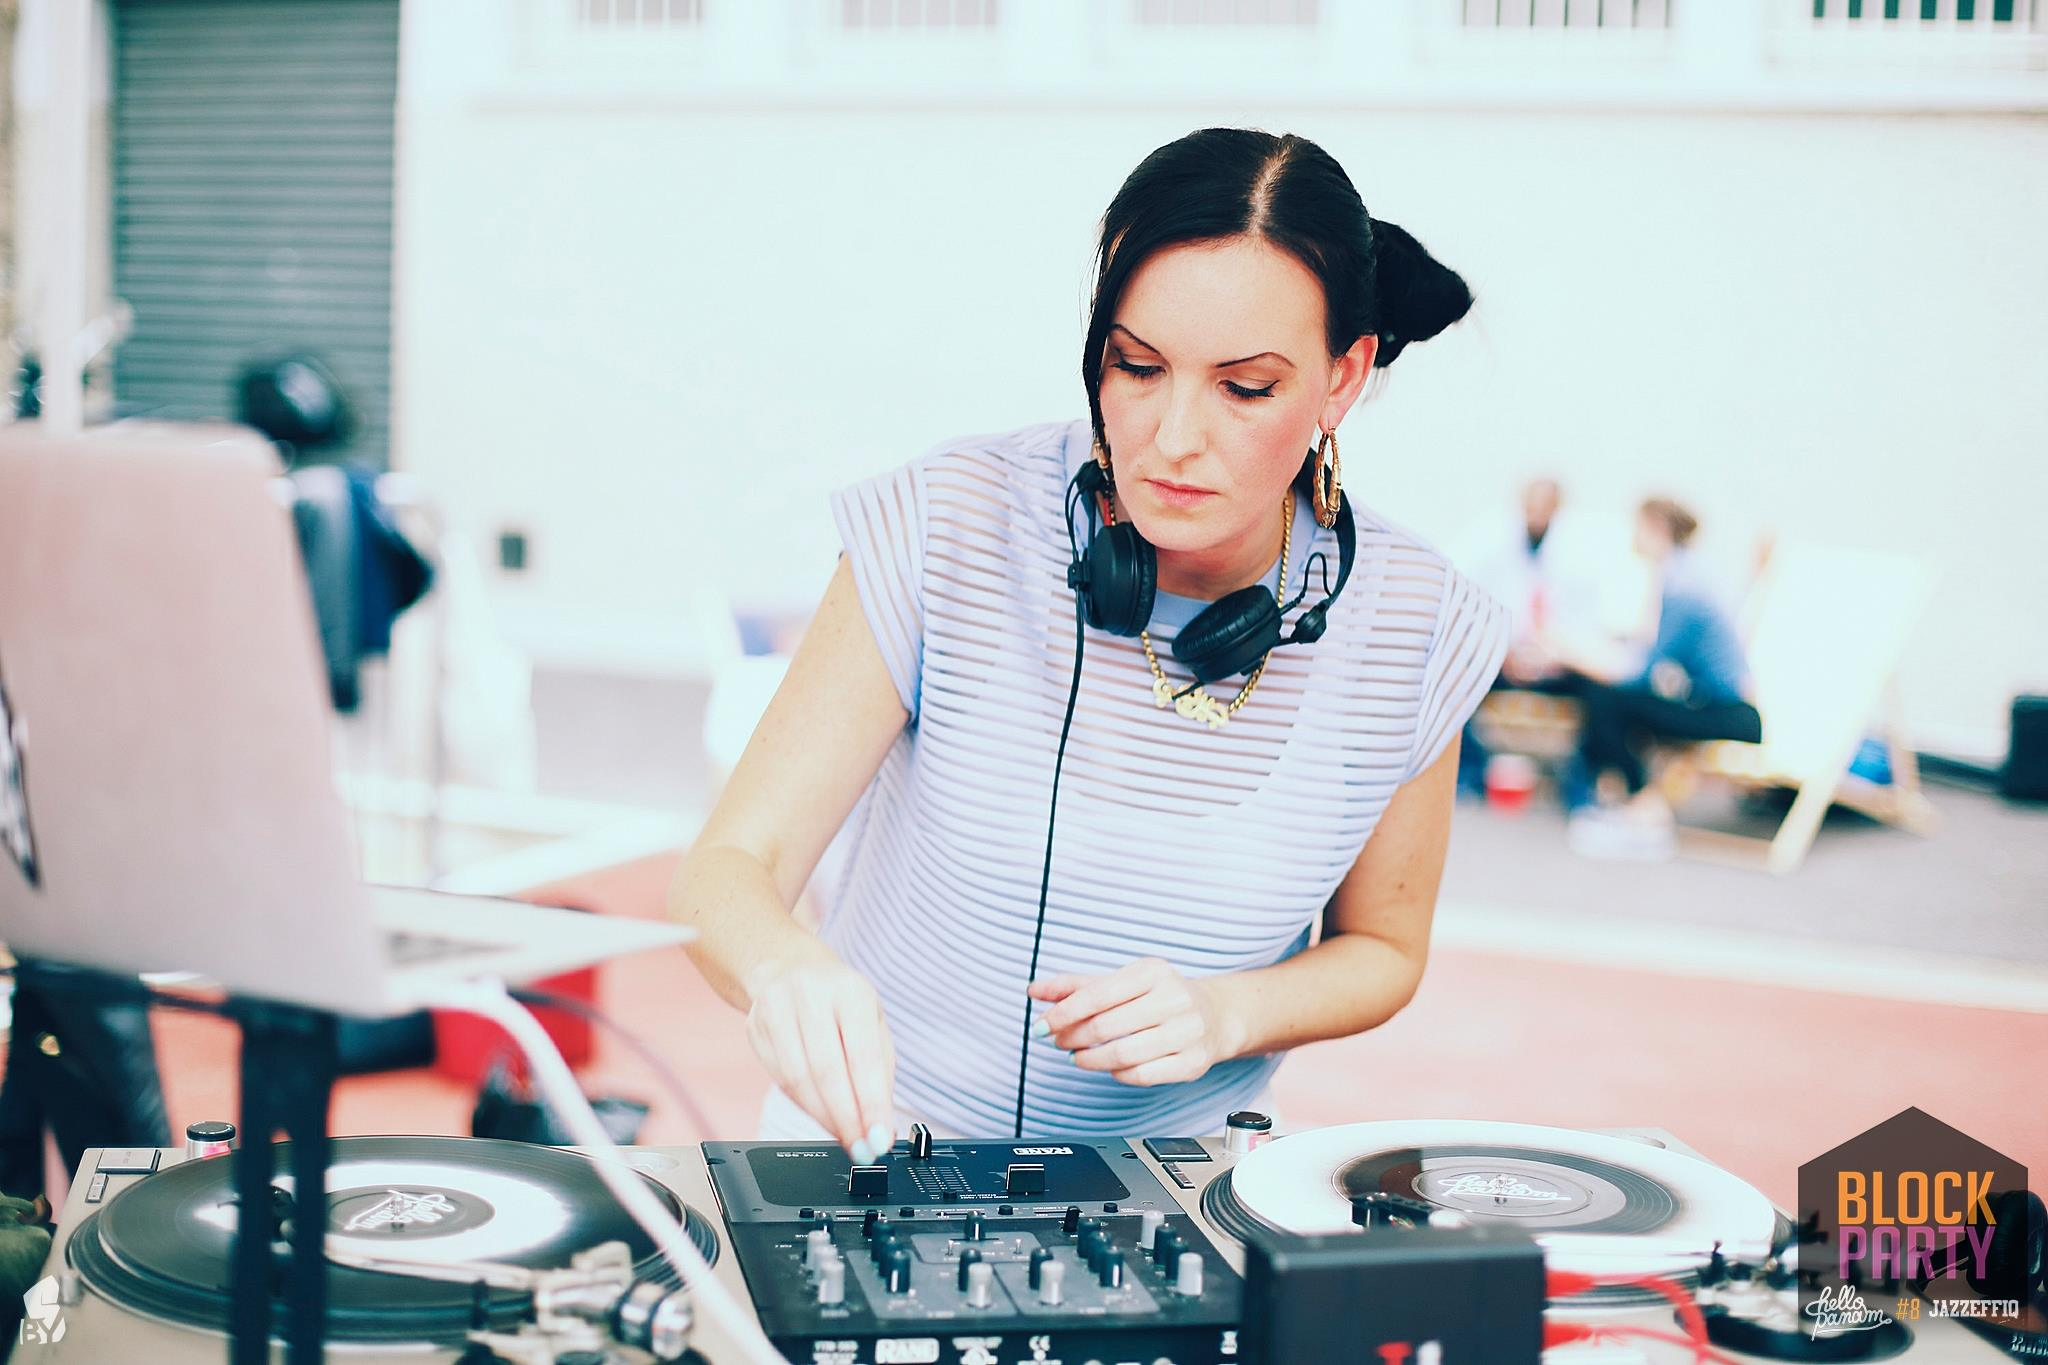 DJ TIA - Tia Turn Tables is a DJ & Sound Curator working with past and future sounds - describing her mixes as